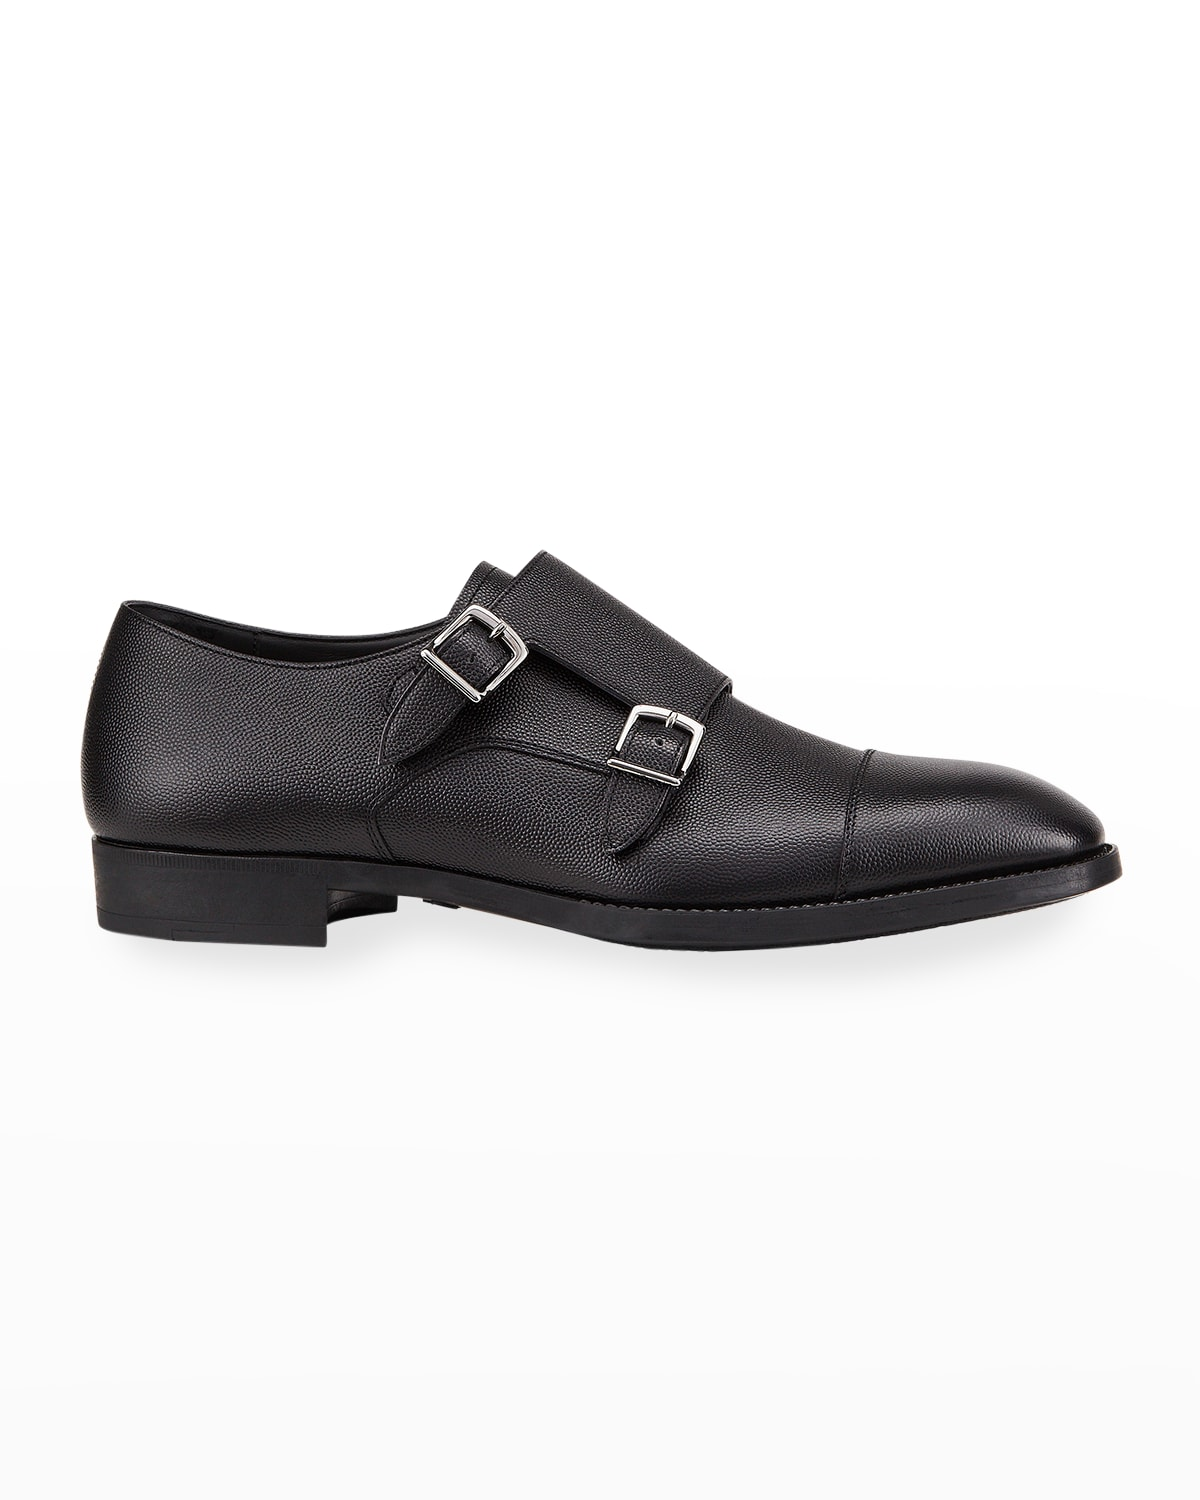 Men's Double-Monk Strap Pebbled Leather Loafers